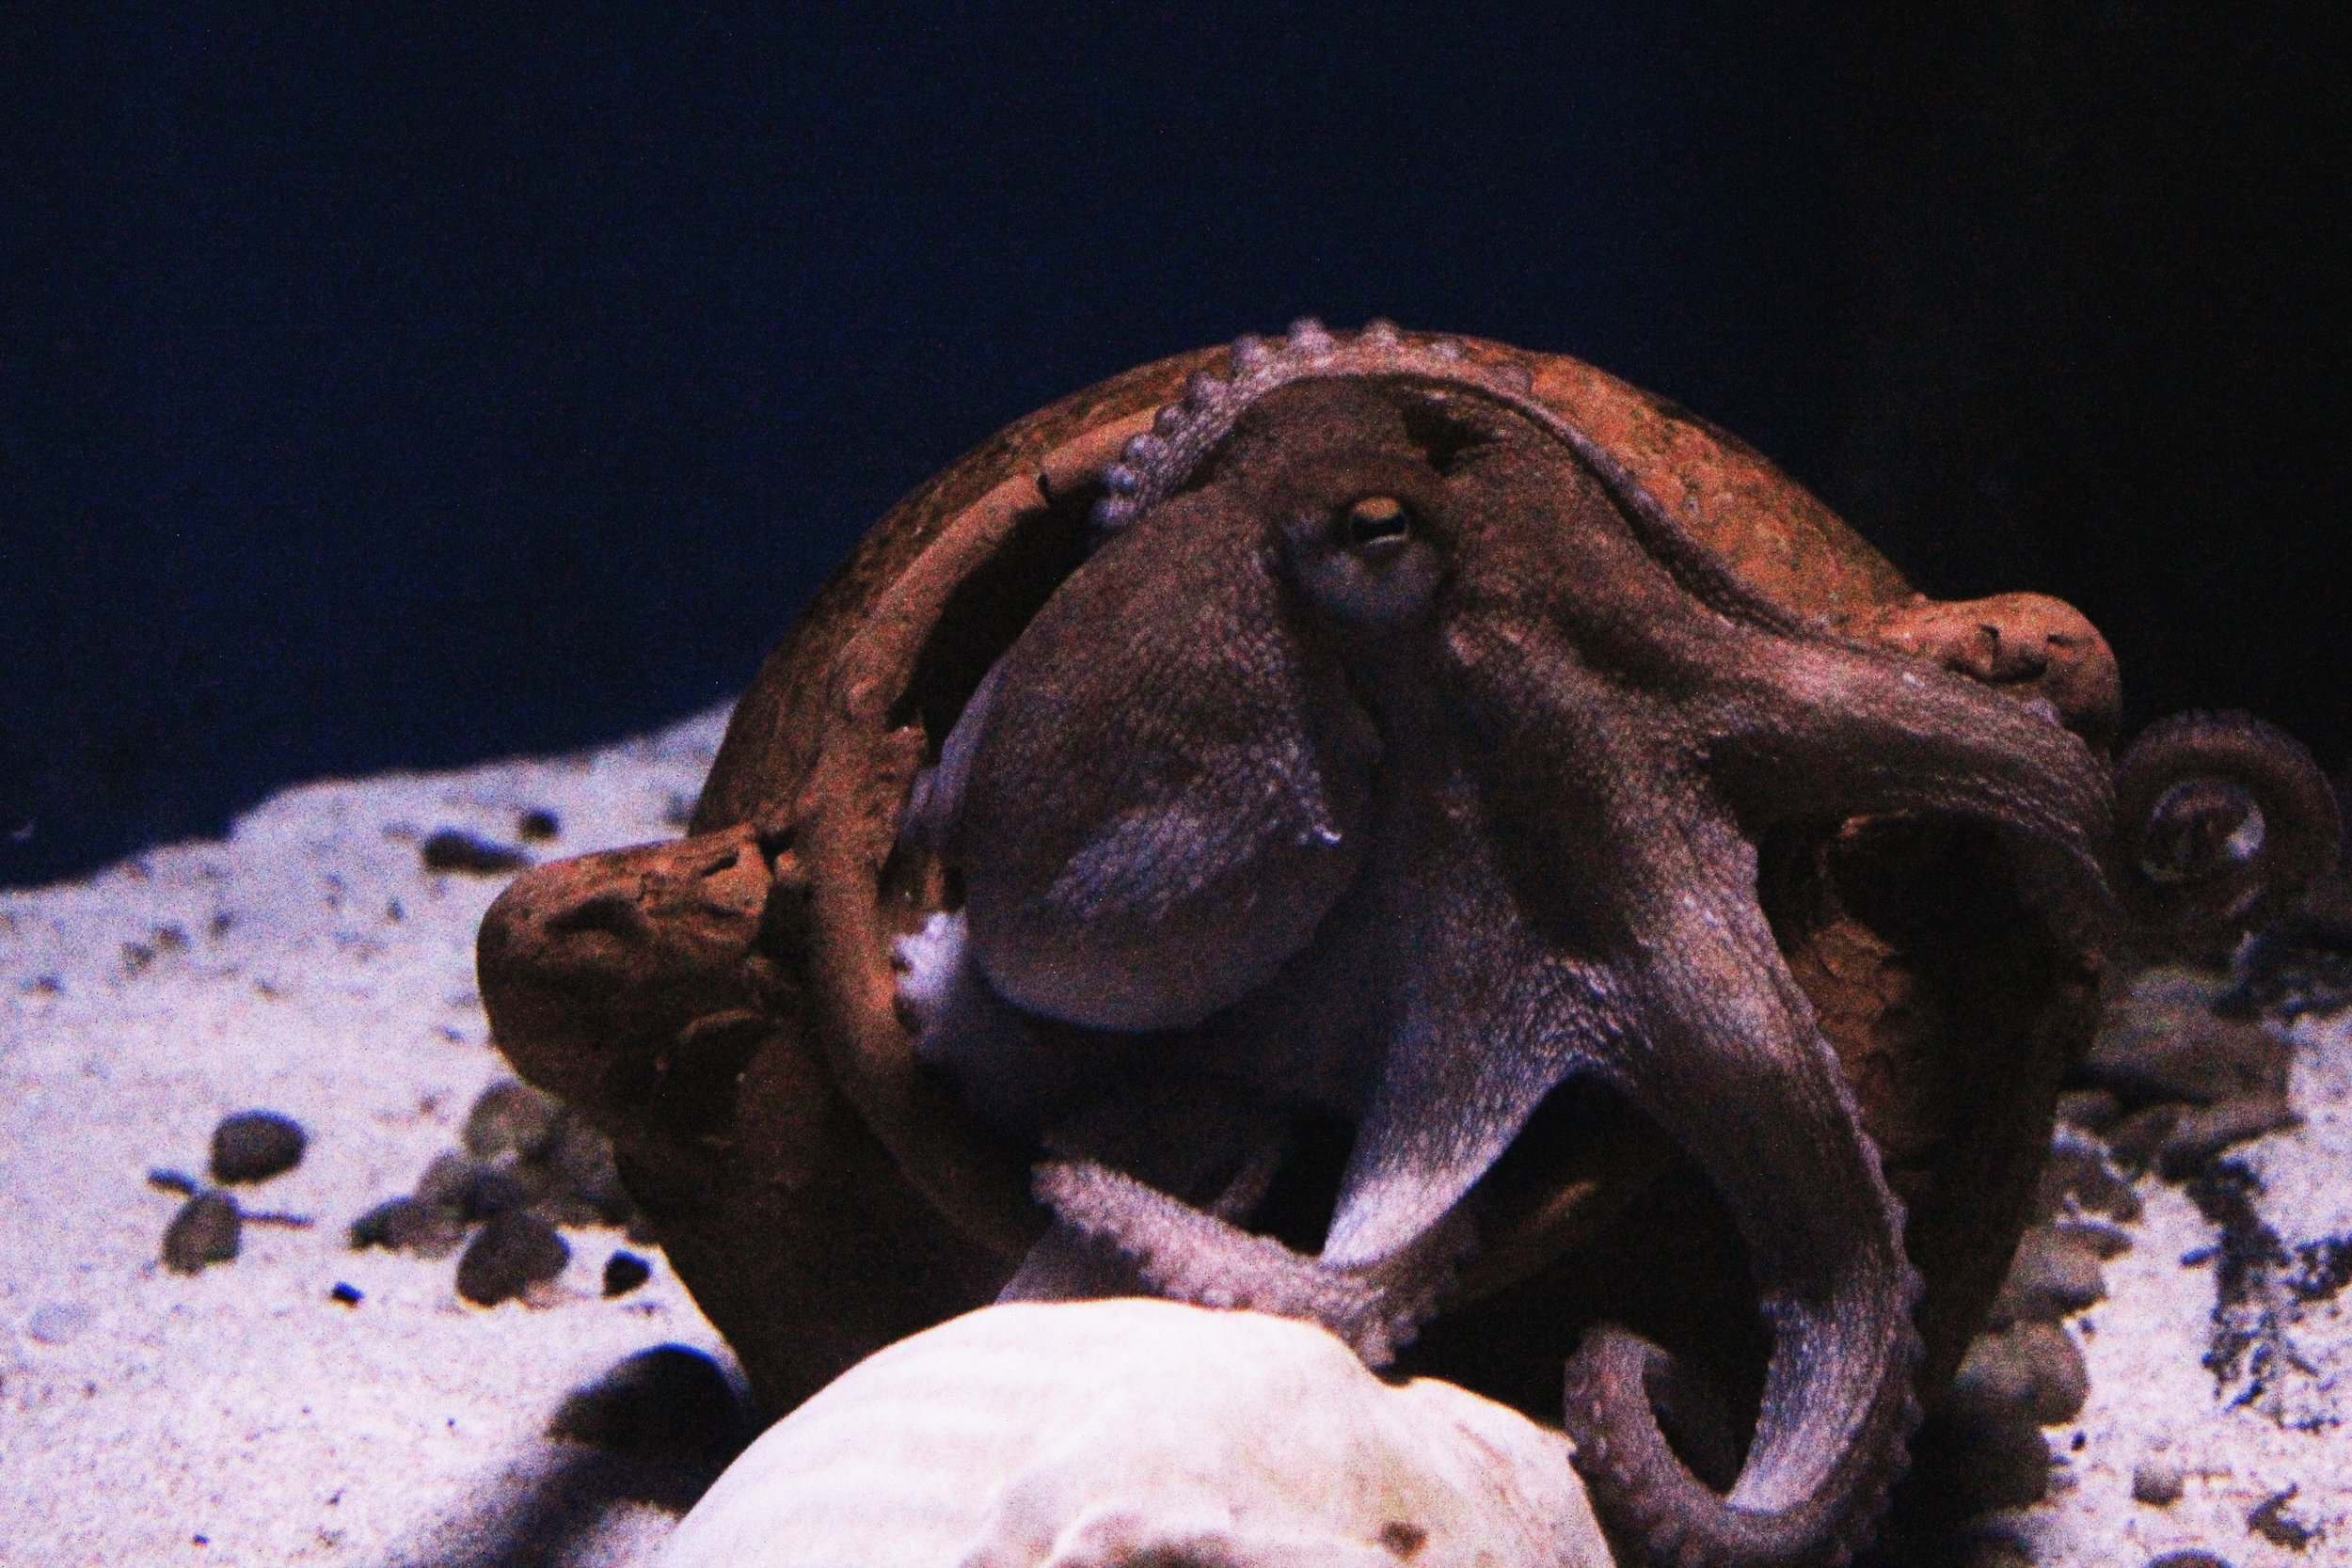 Octopuses in captivity are charismatic, active, and highly intelligent. Photo credit: Janayara Machado